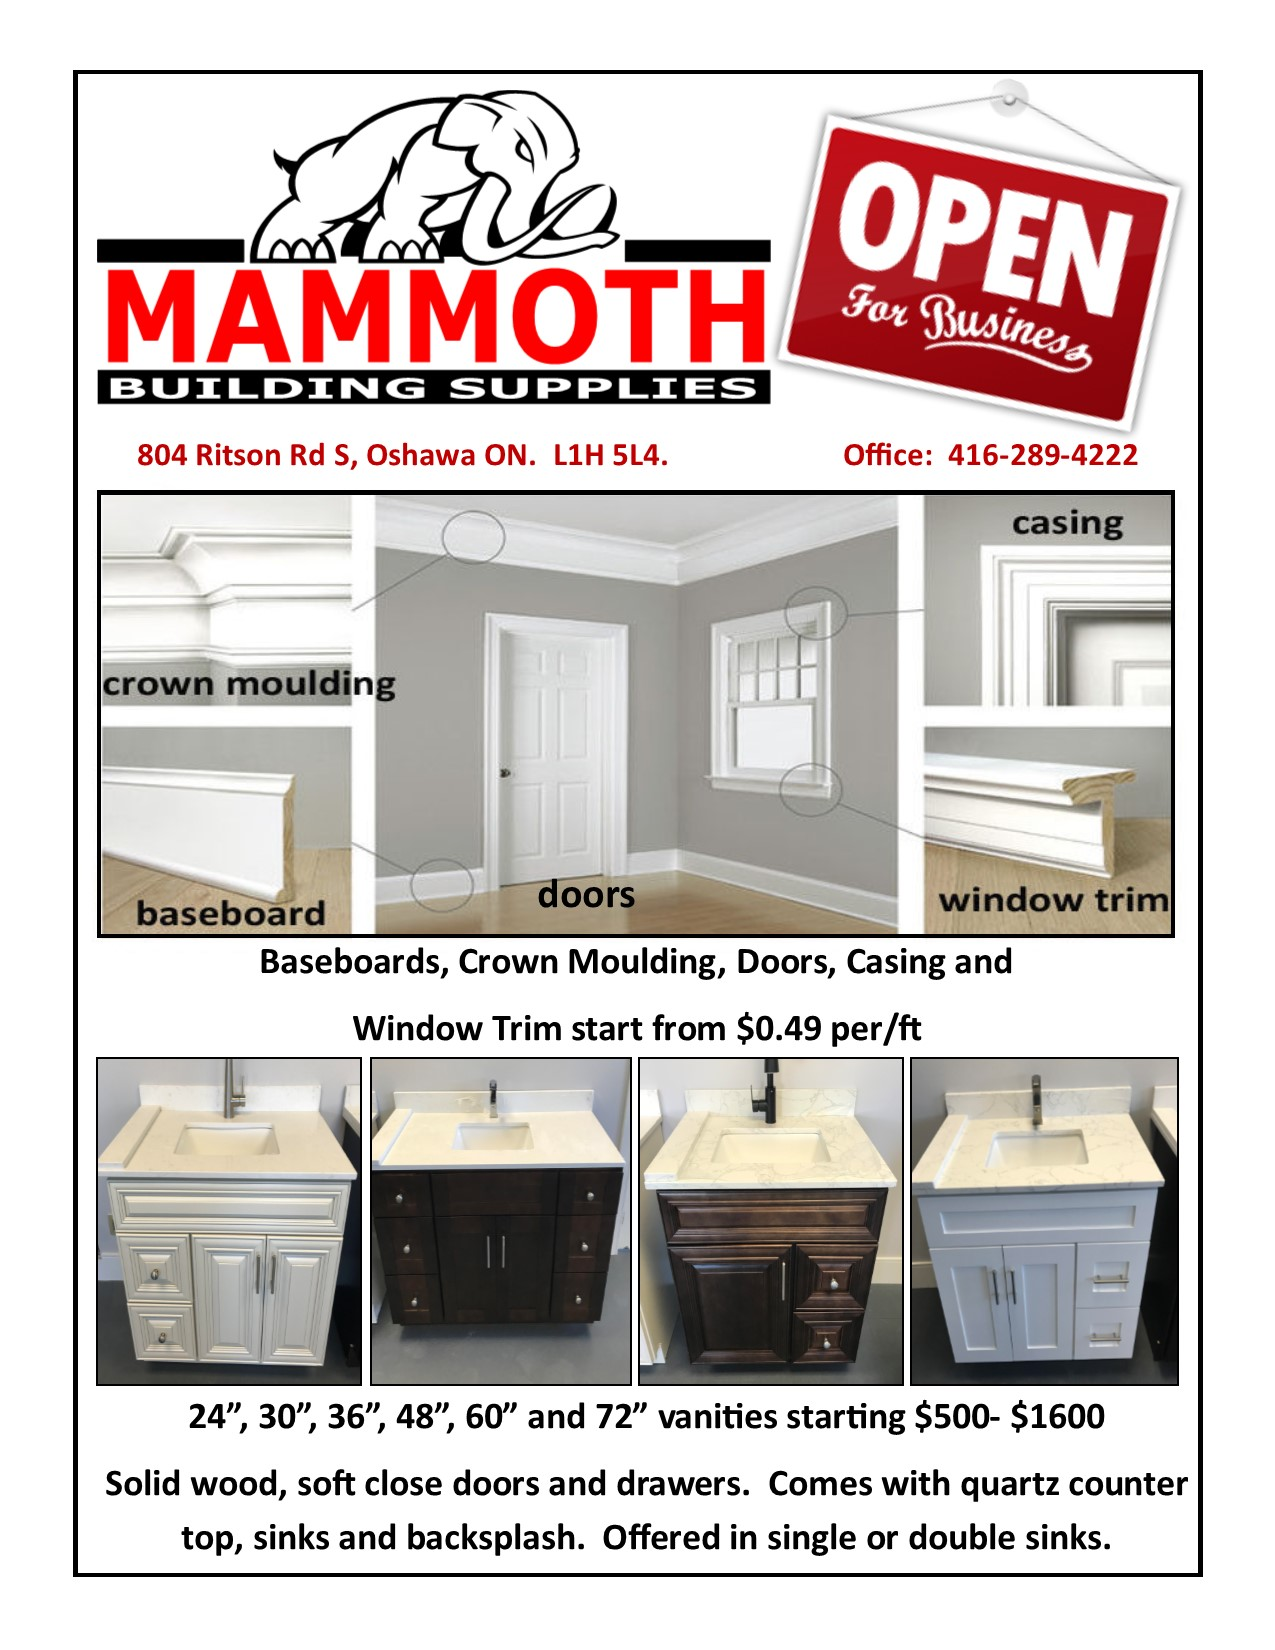 Mammoth Building Supplies | Building supplier in Oshawa